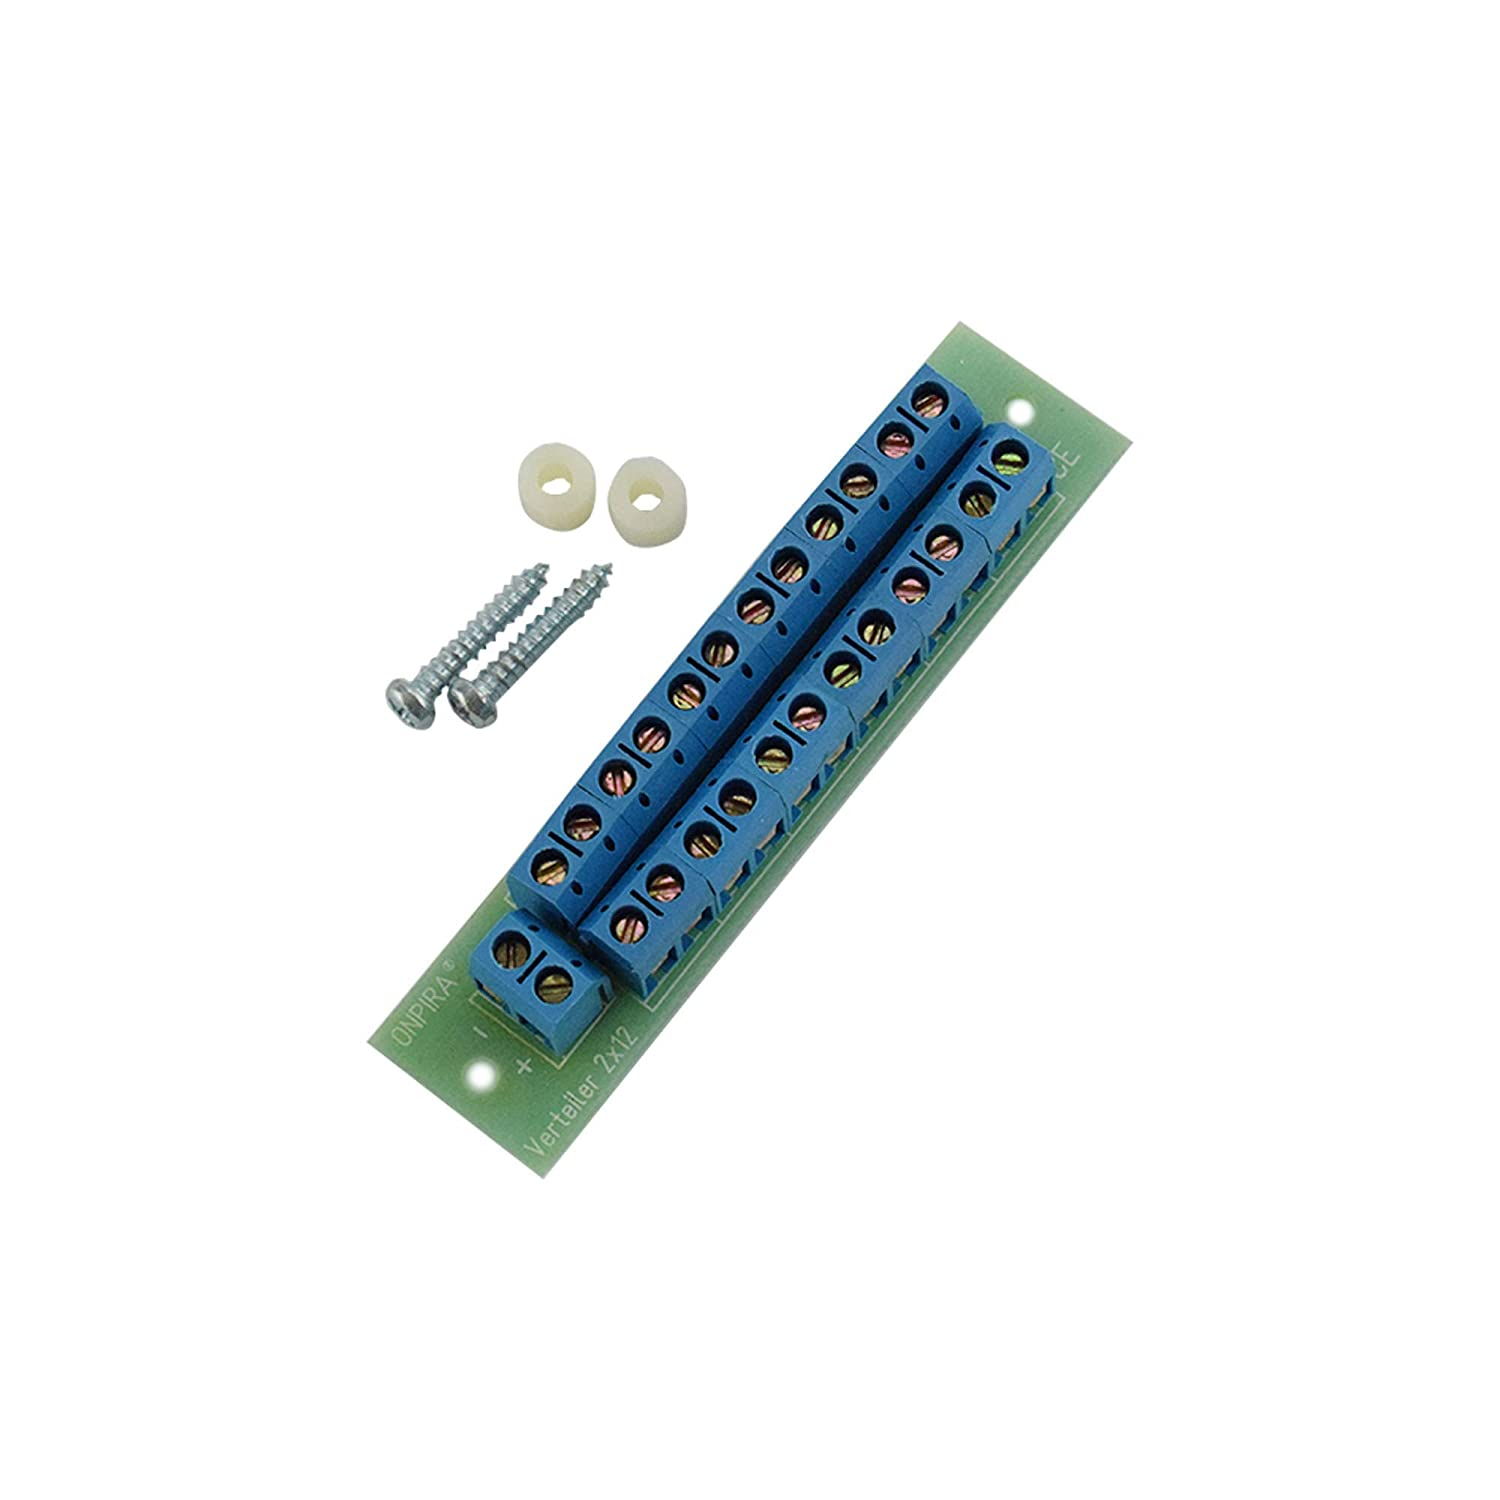 Power distribution 2x 18 Pin W2x18 with Socket Terminal and Control Lights